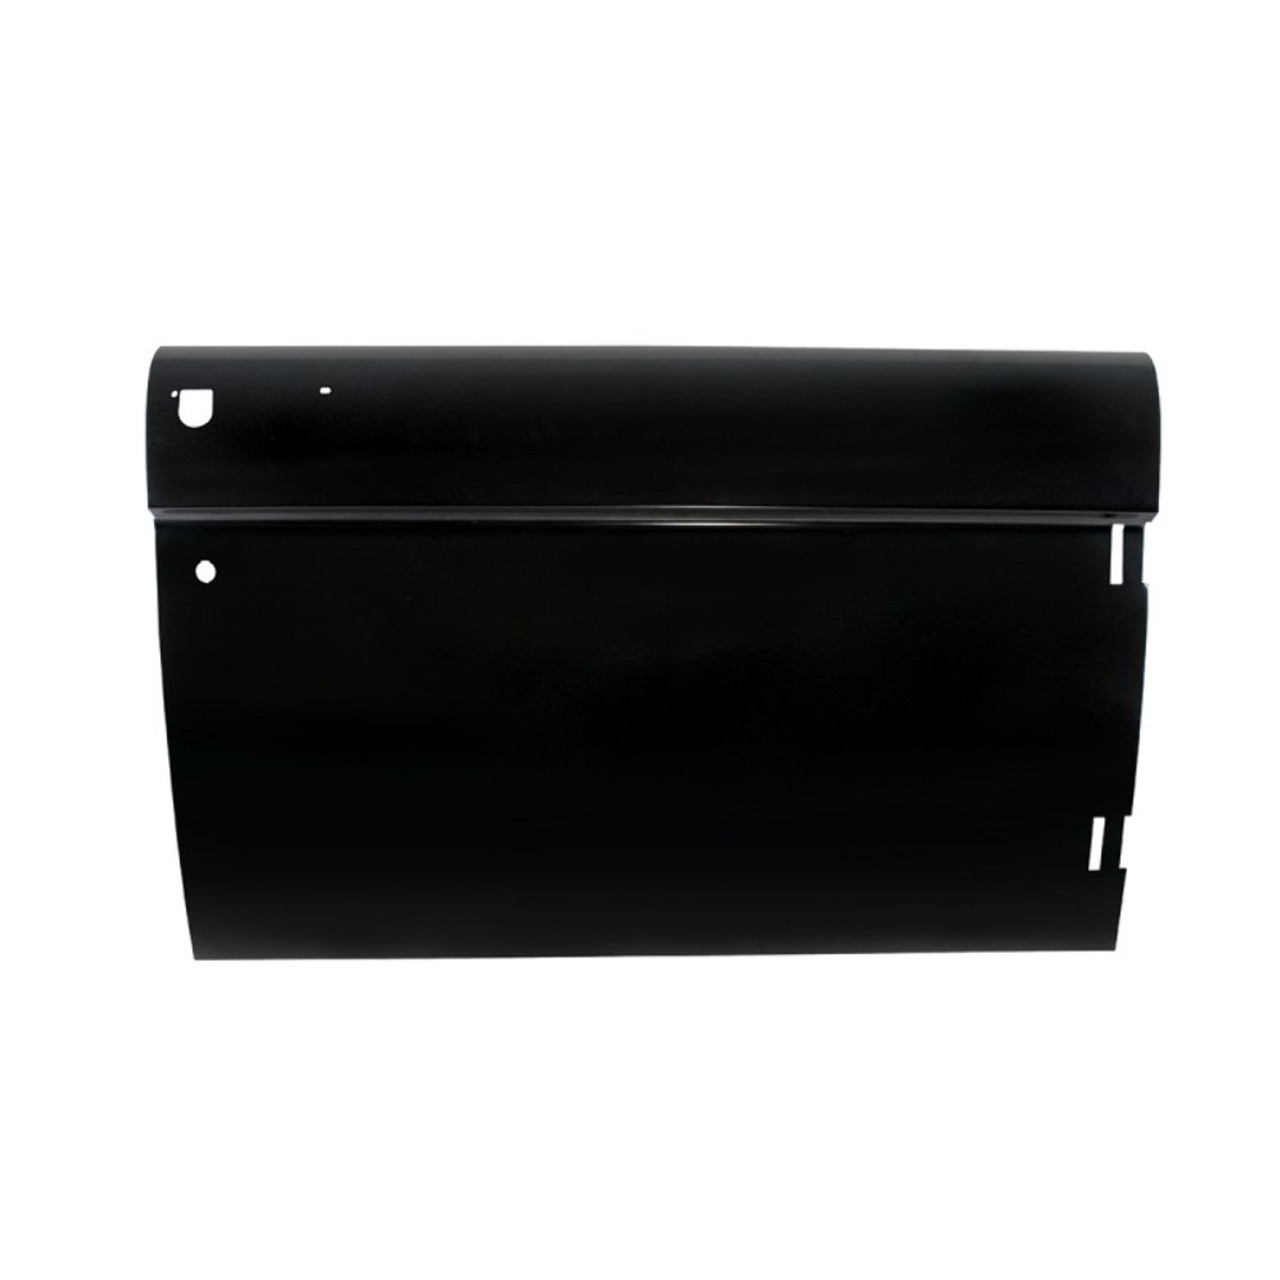 1968-77 Ford Bronco Door Skin, R/H